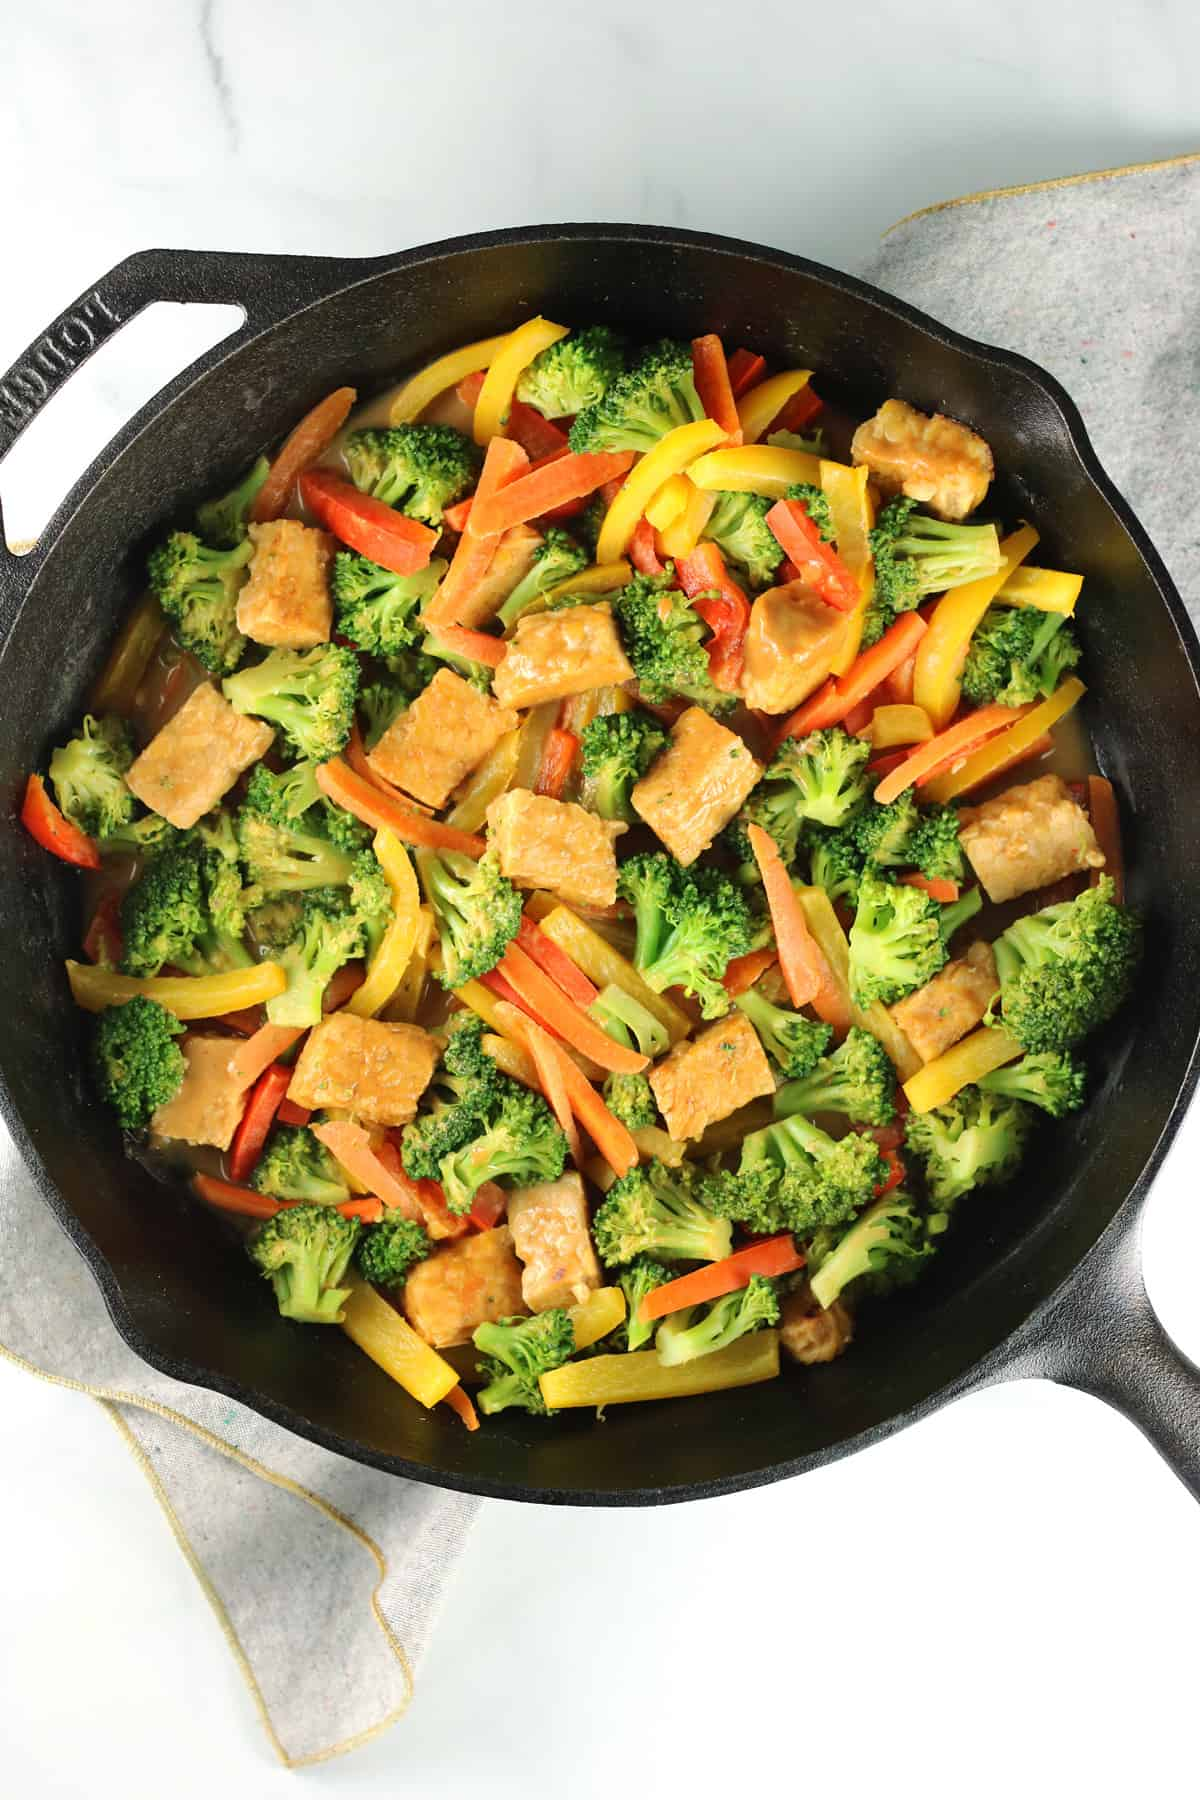 tempeh stir fry in pan with gray napkin underneath